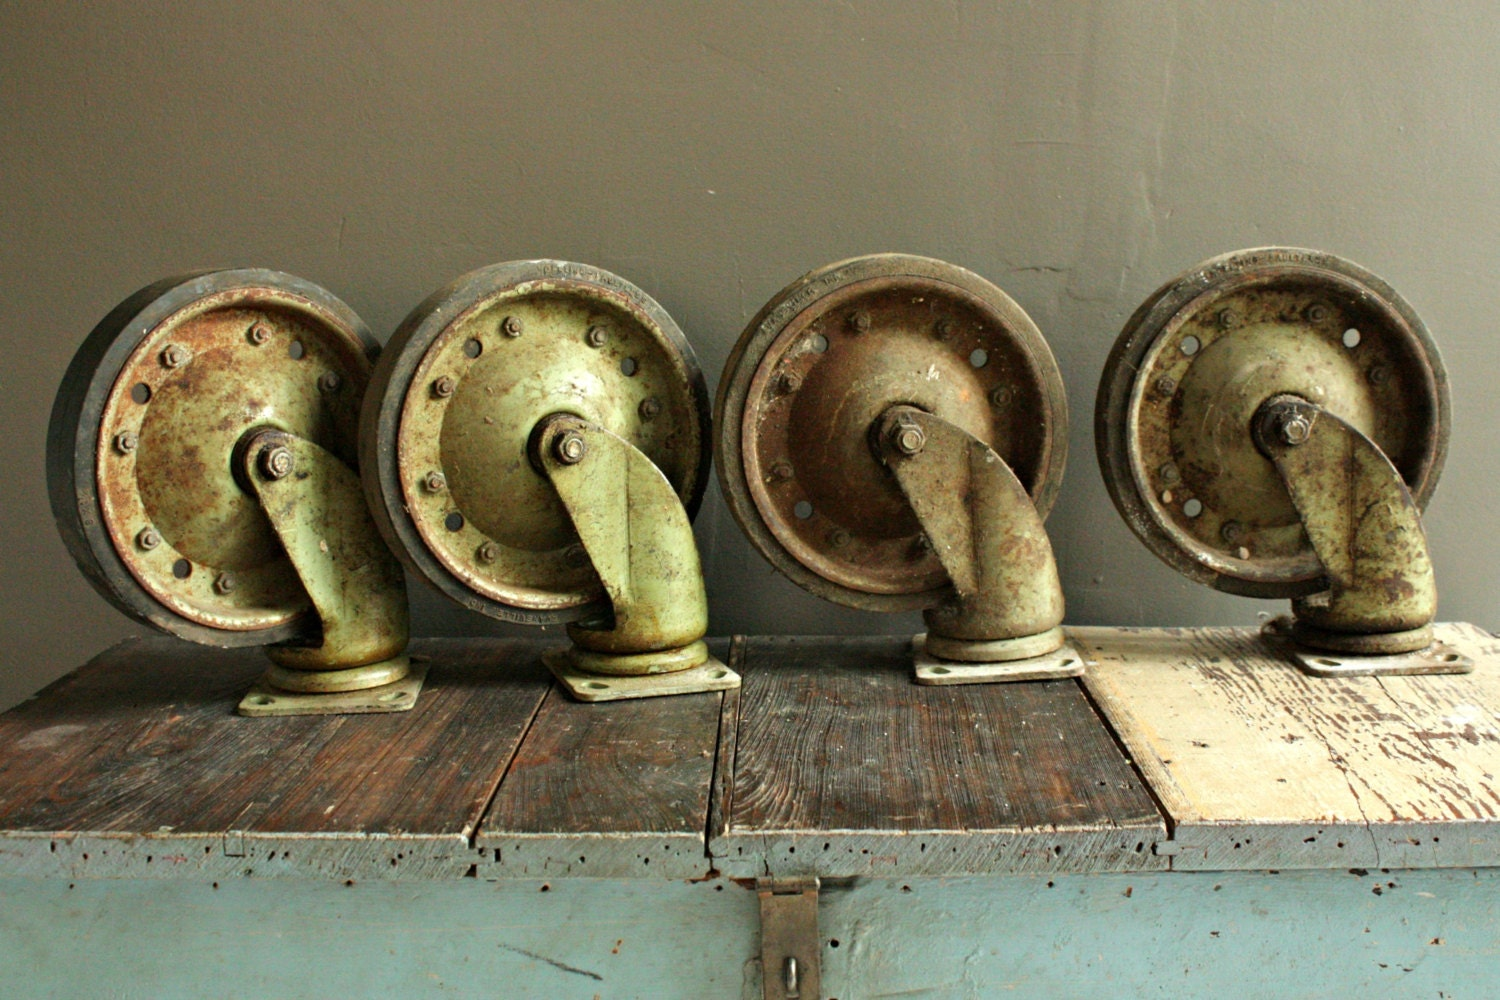 4 Vintage Casters, Large Swivel Casters, Industrial Caster Wheels,  Restoration Hardware, Steel Casters, Antique Casters, Rustic Casters,